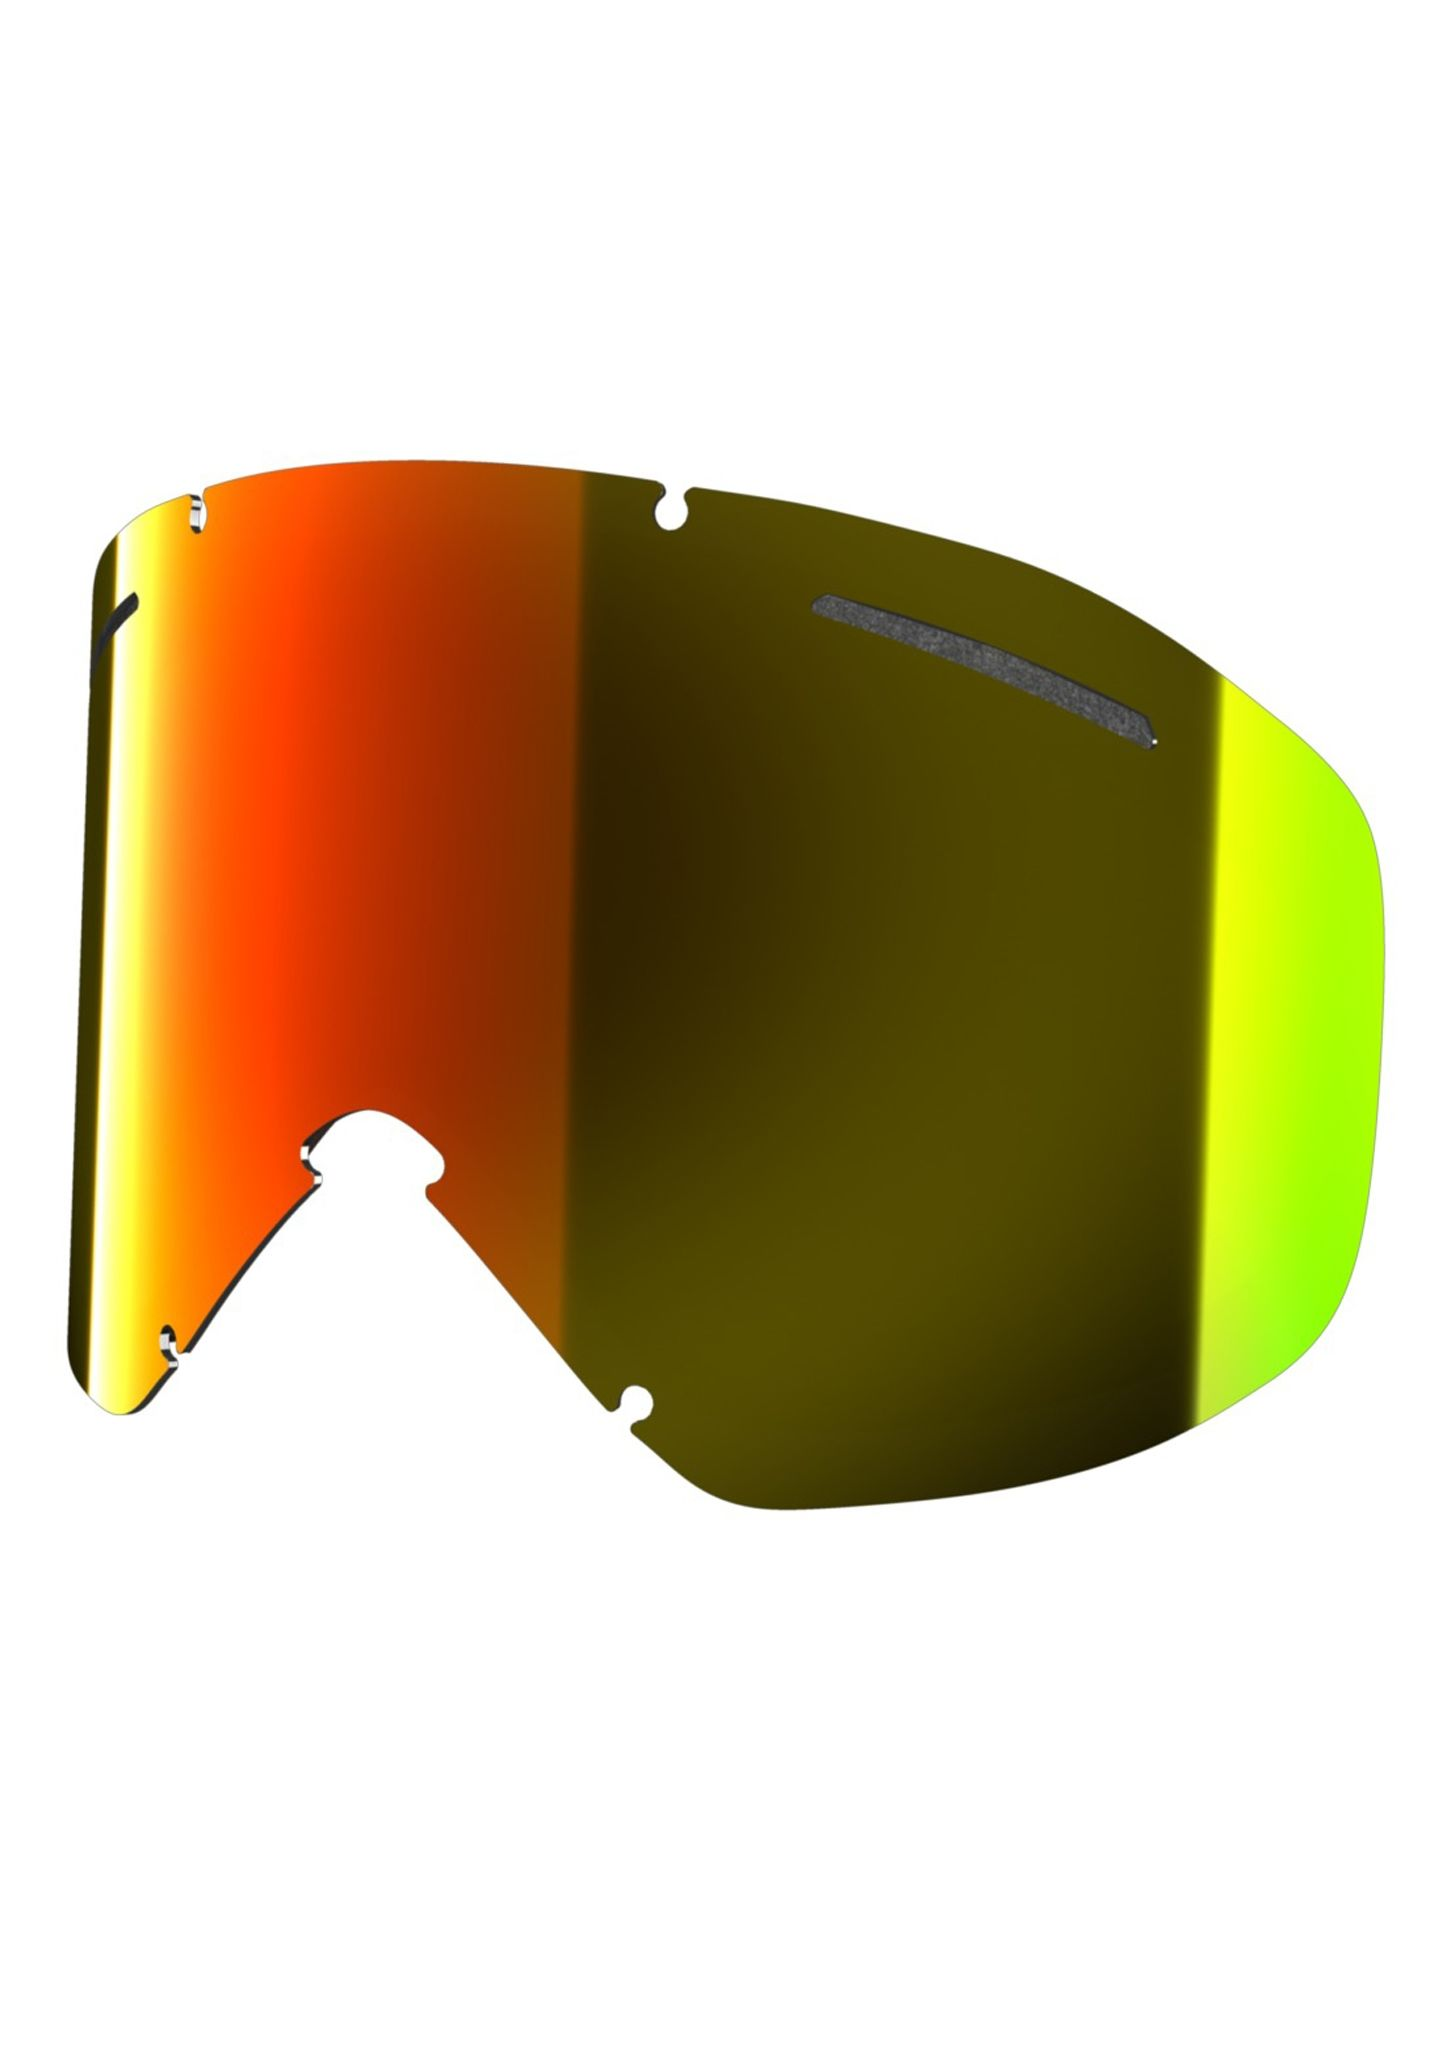 bcf20bb3566 OAKLEY 02XL Replacement Lens - Snowboard Goggle - Red - Planet Sports